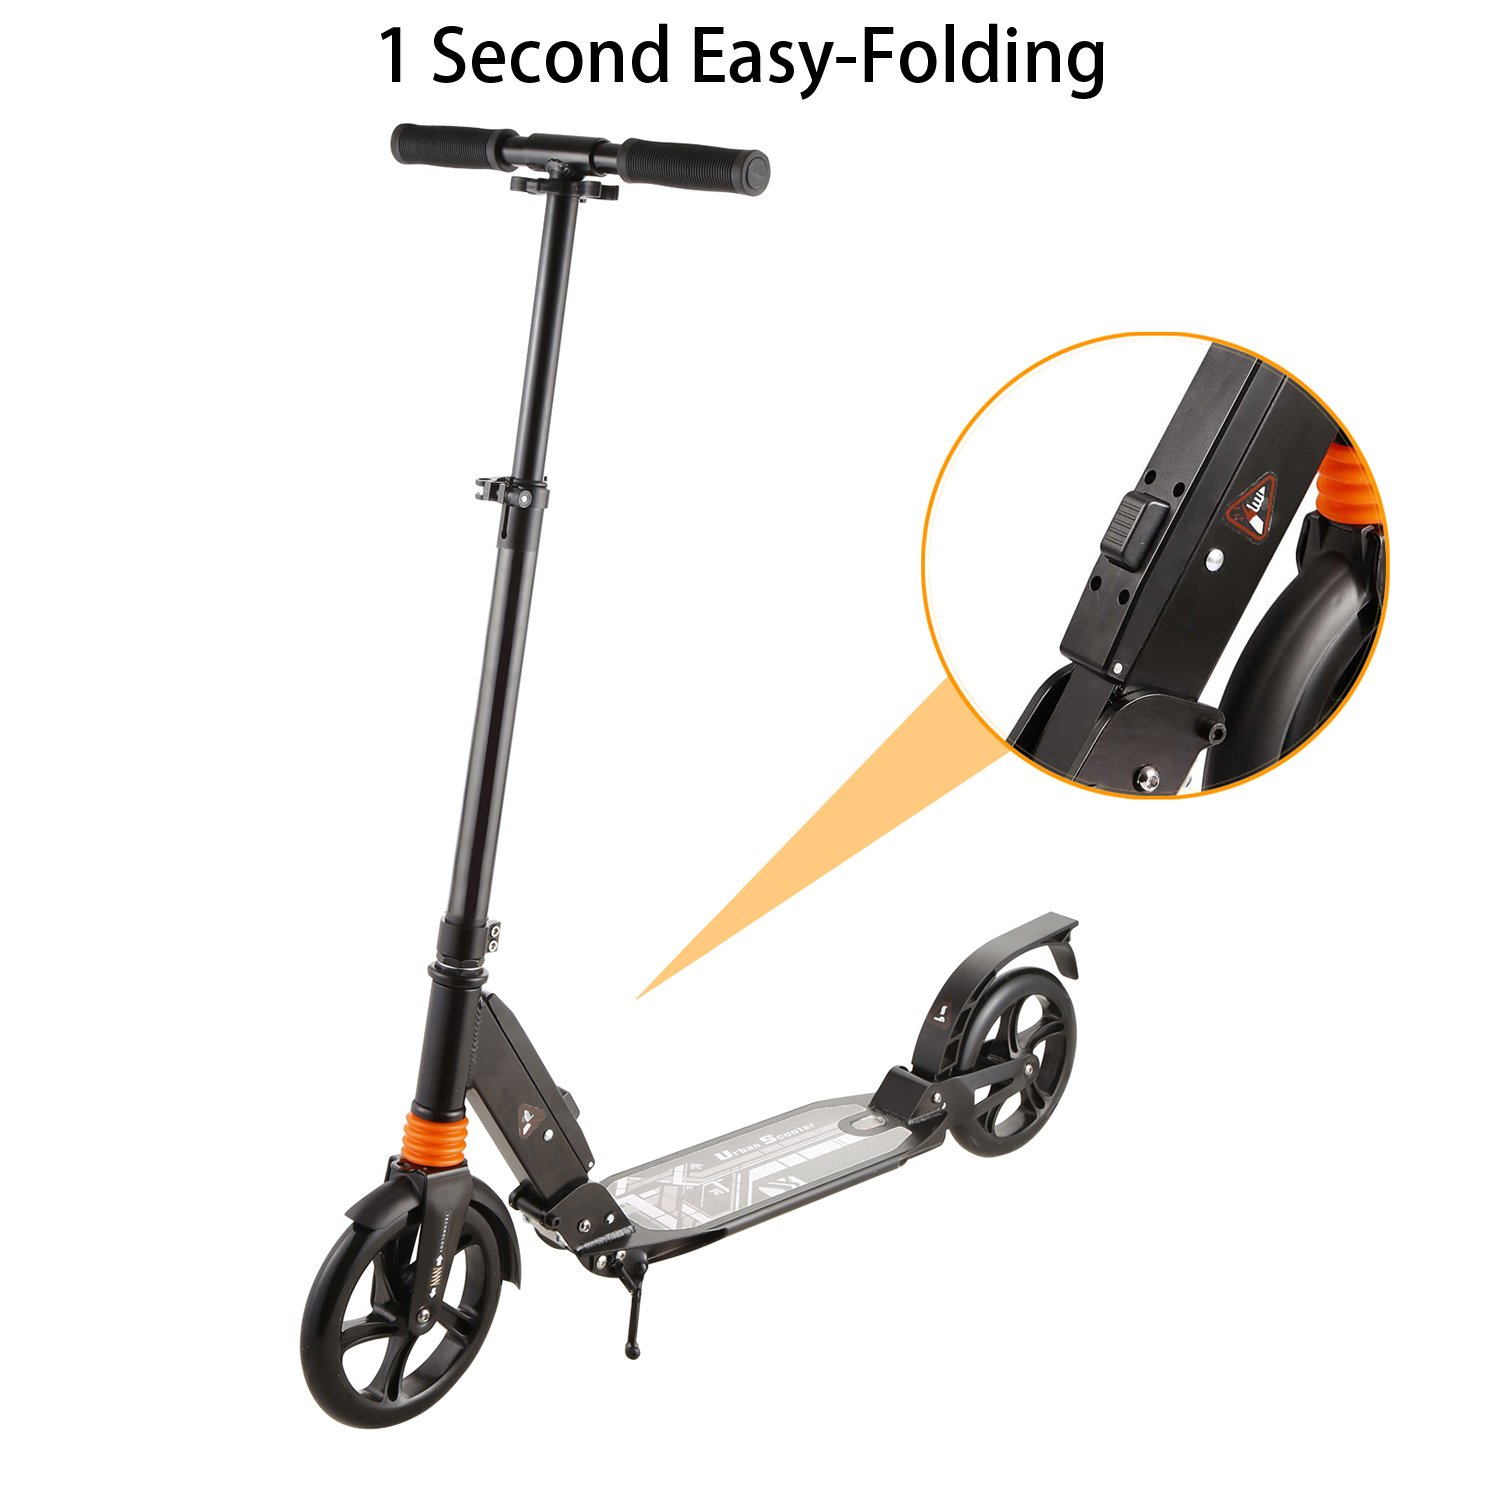 Easy-Folding Adult Scooter with Dual Suspension Shocks and 2 Big Wheels